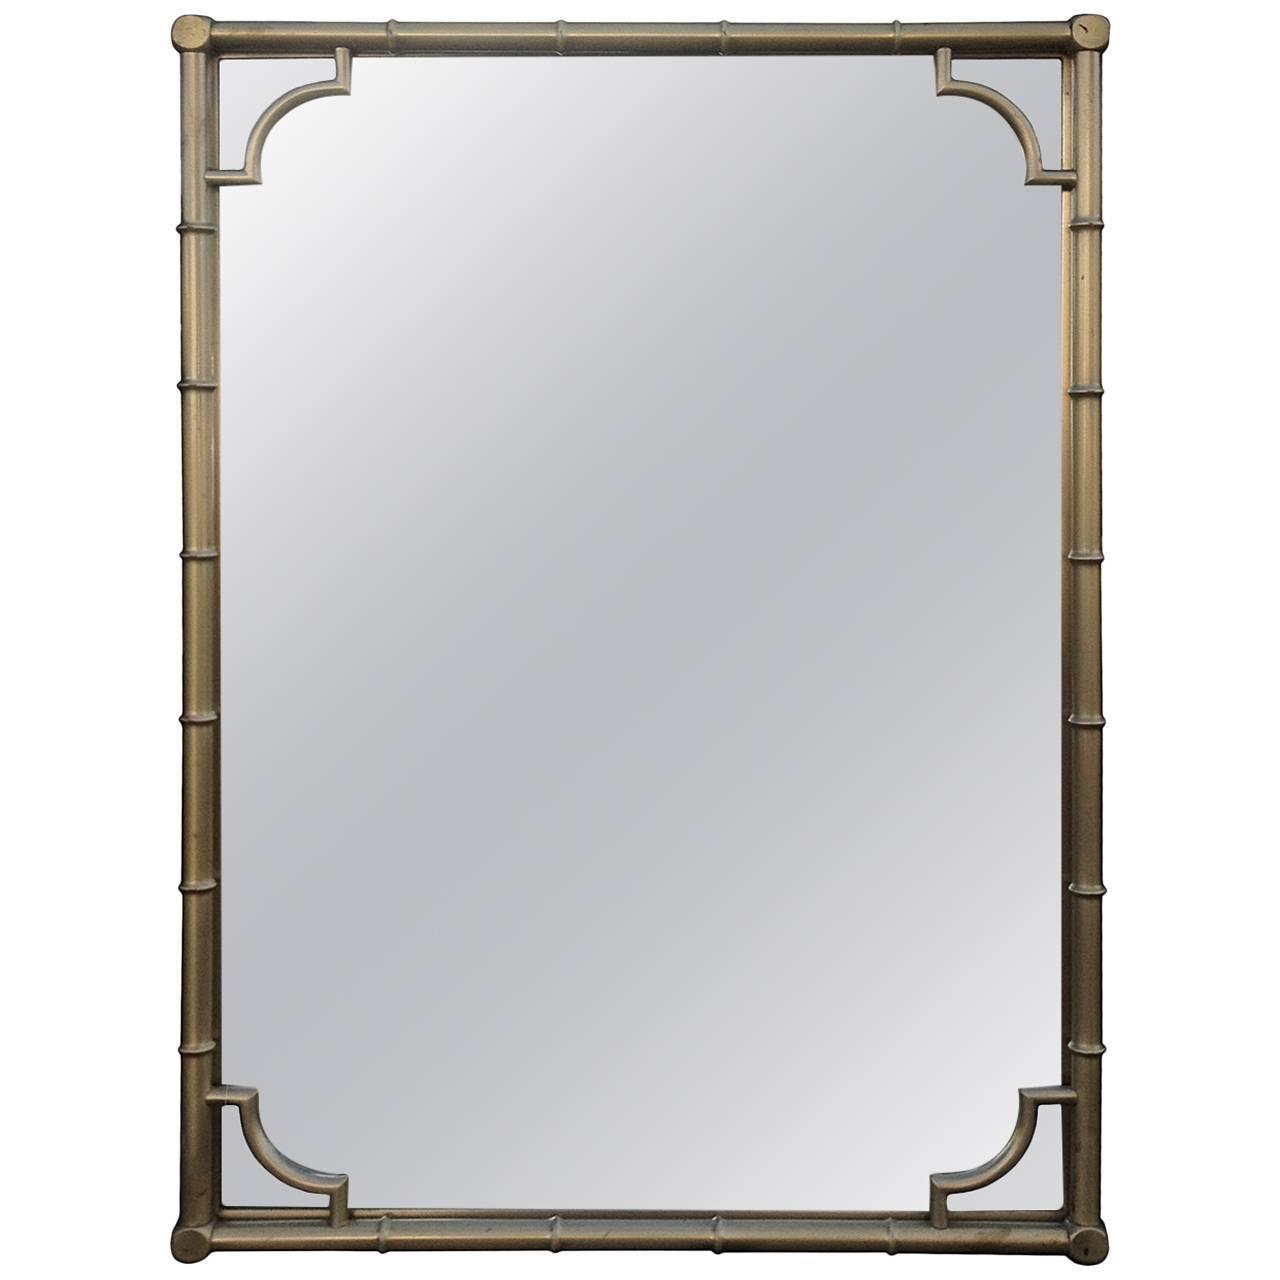 Long mirror mirrors full length wide mirror full length for Long narrow mirrors for sale